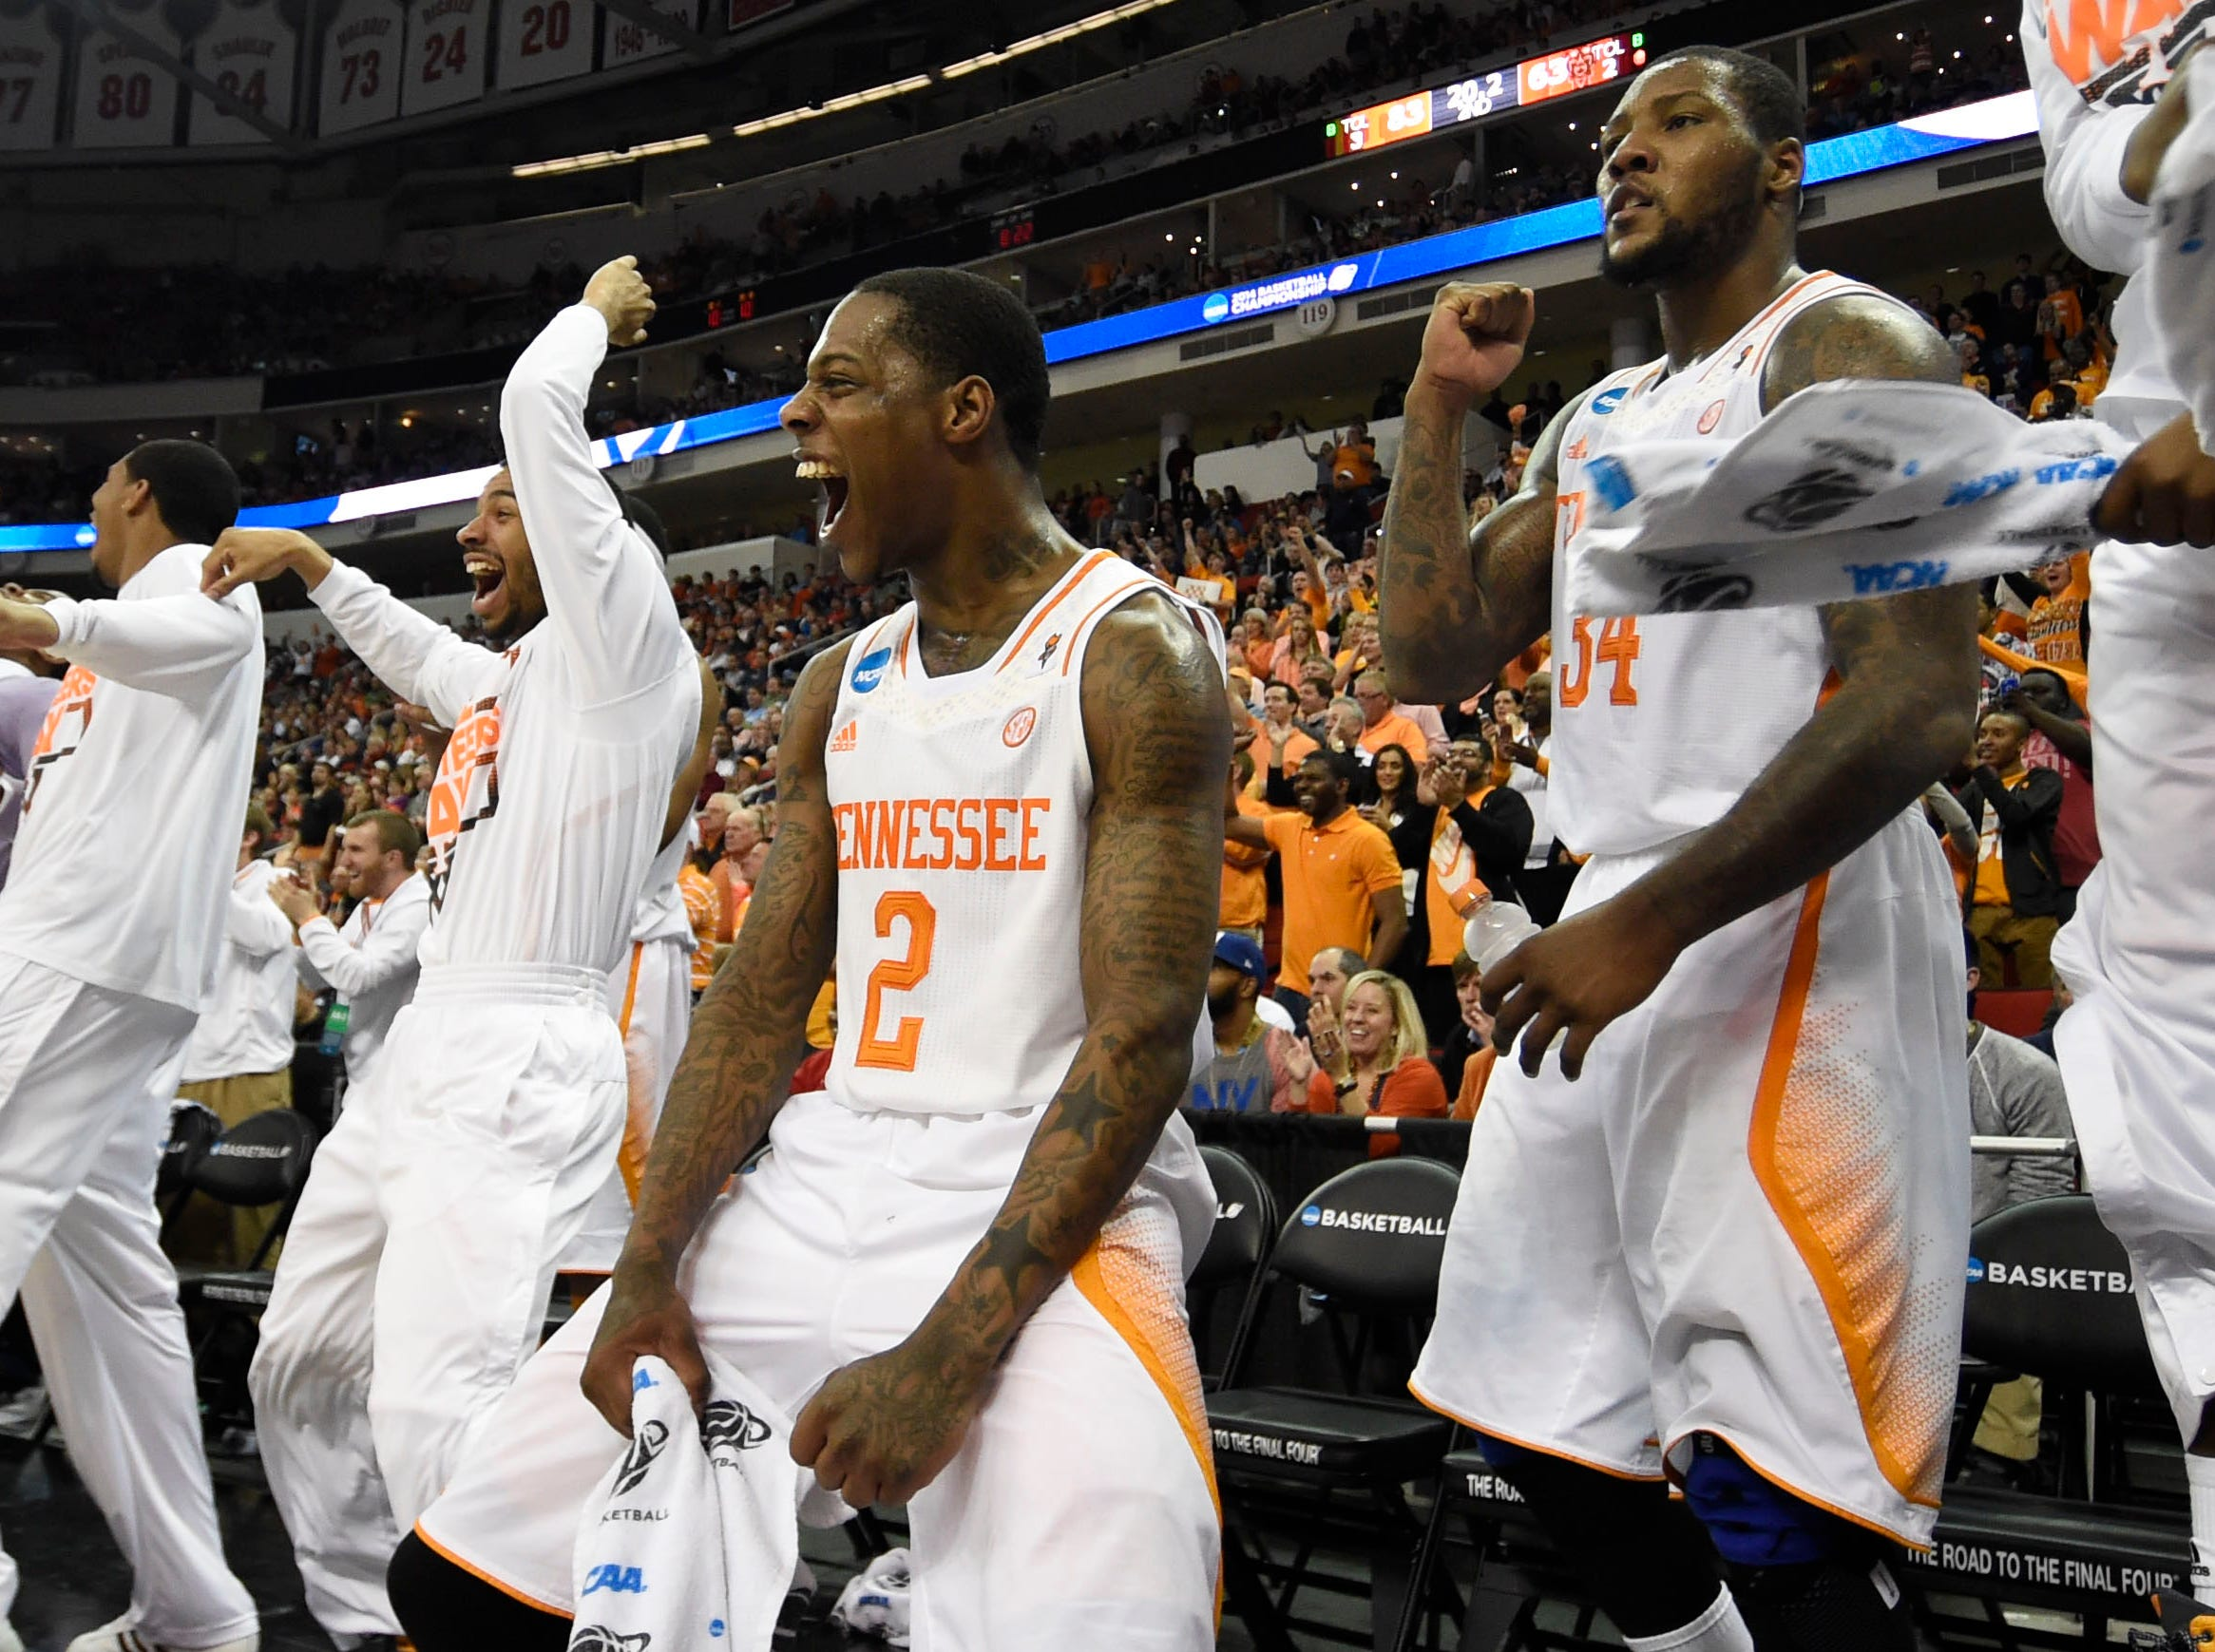 Tennessee guard Antonio Barton (2), center, and Tennessee forward Jeronne Maymon (34), right, celebrate with teammates after Tennessee secures a Sweet Sixteen berth by defeating Mercer 83-63 in a third-round NCAA tournament game at the PNC Arena in Raleigh, N.C. on Sunday, March 23, 2014.